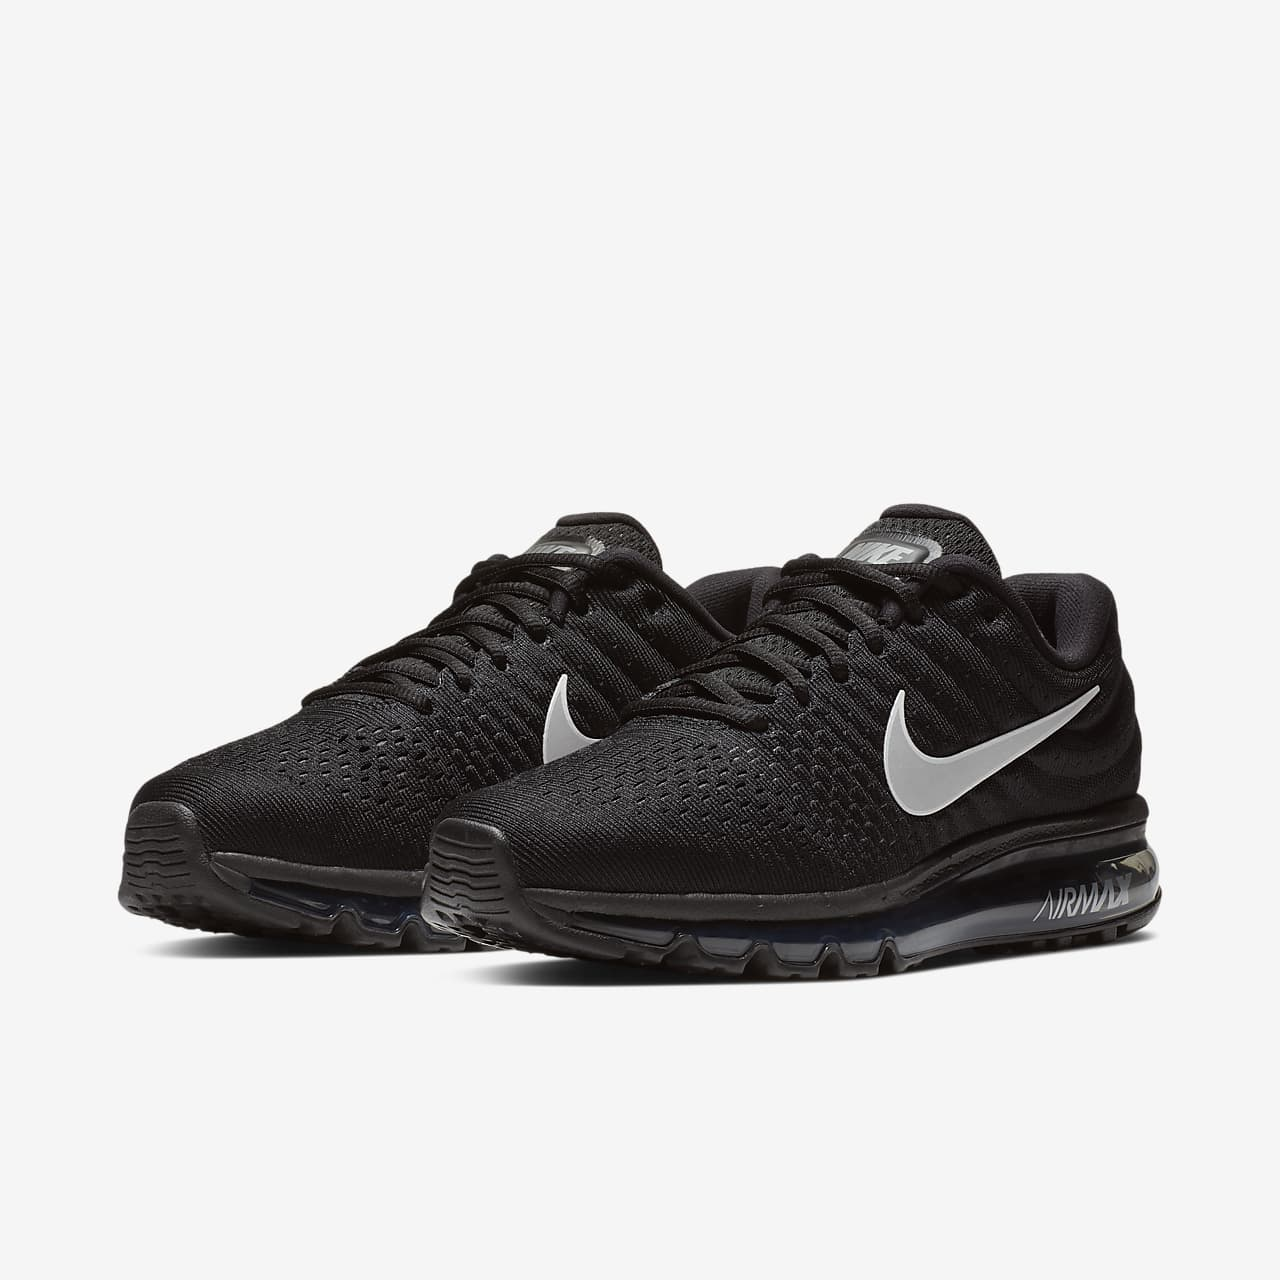 mens black nike air max running shoes